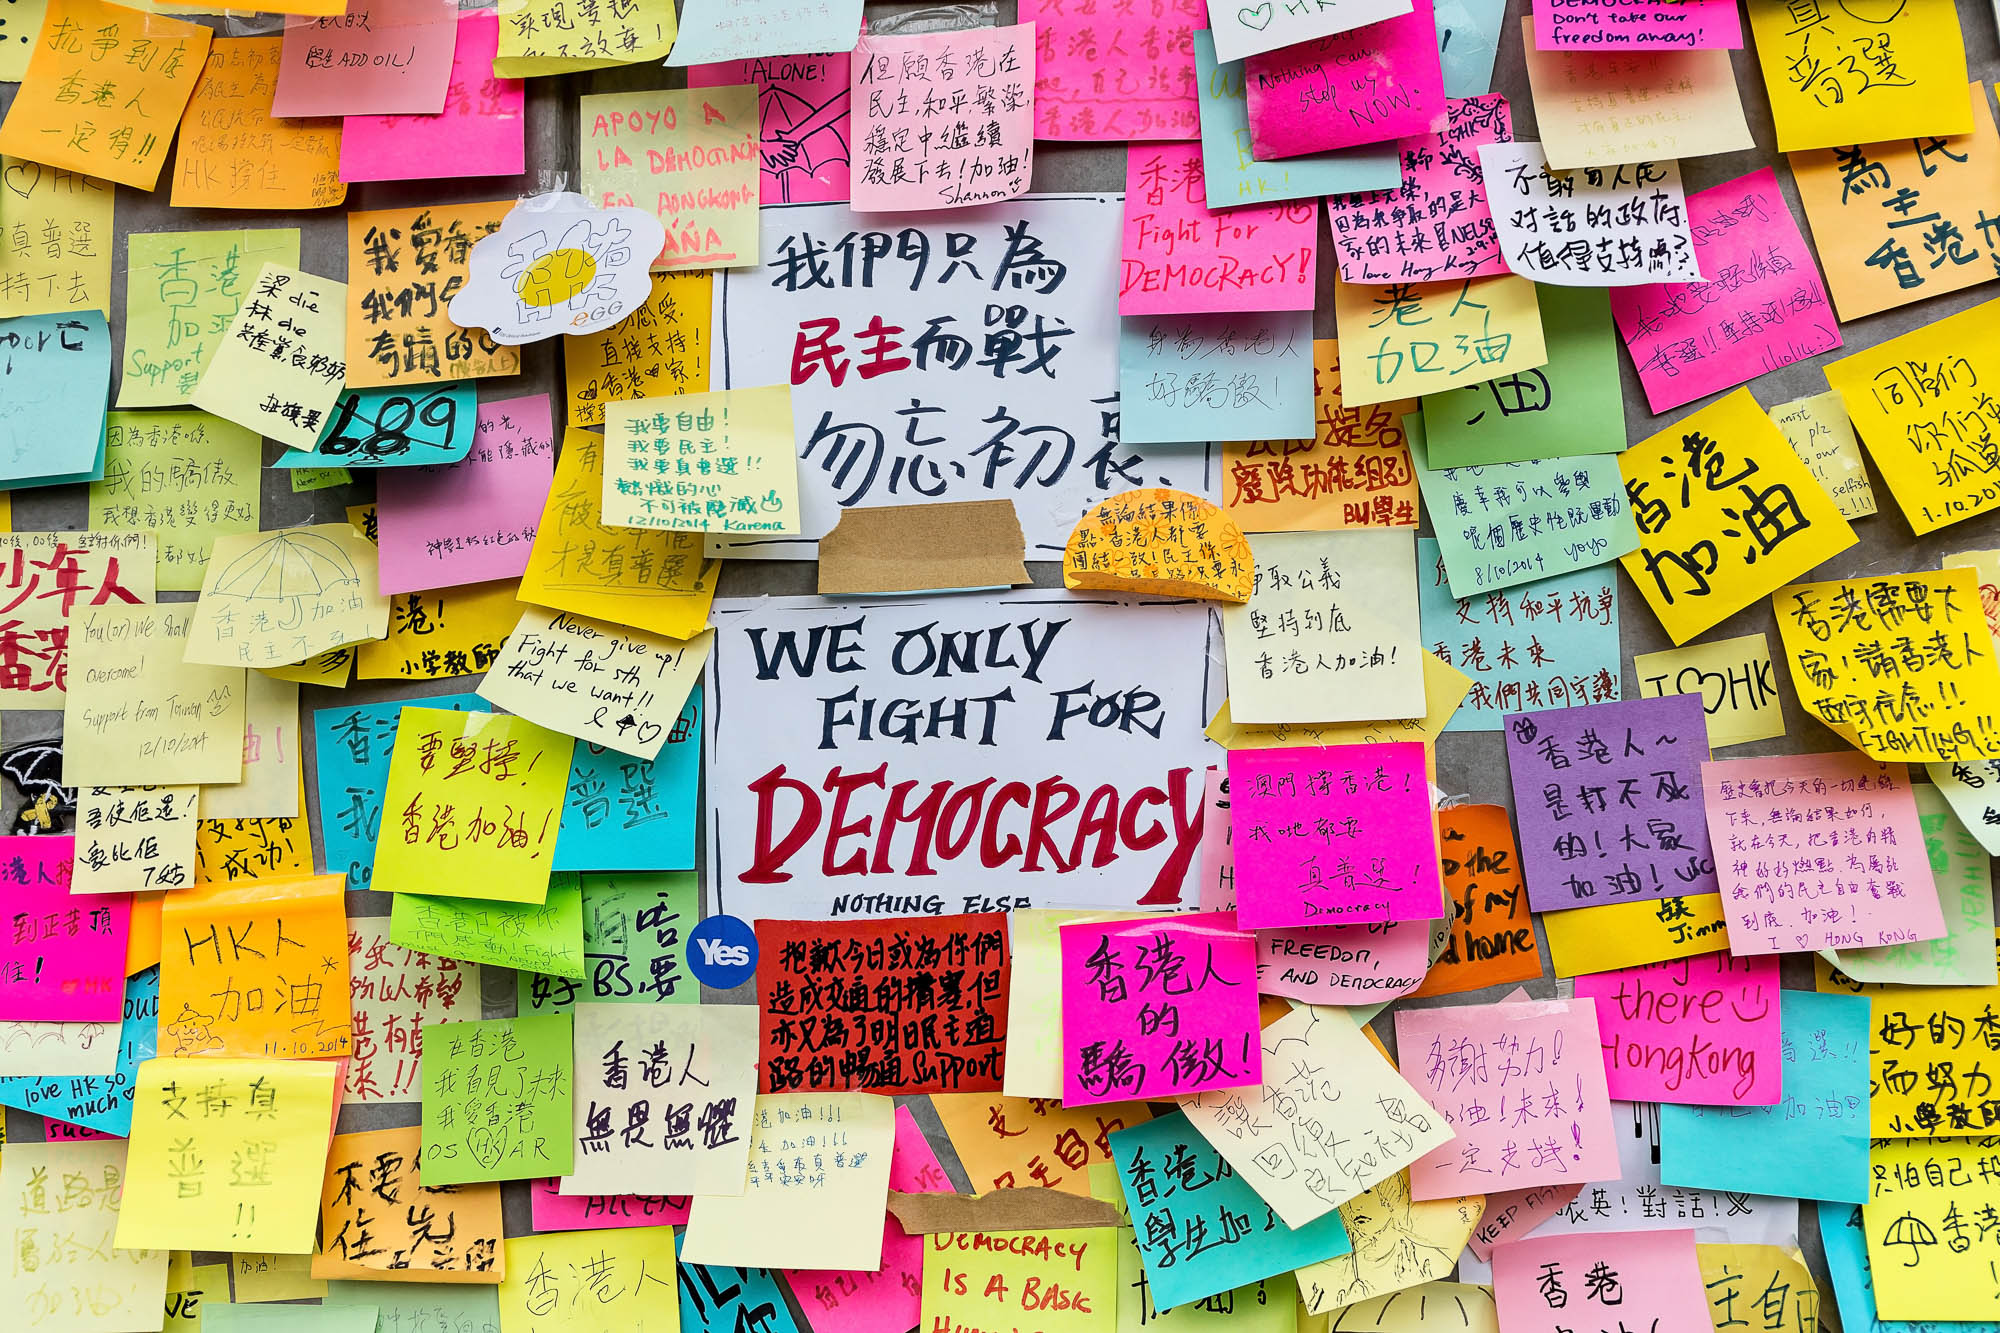 Messages left by protesters are displayed on the wall of the Hong Kong Government Complex in Admiralty, Hong Kong. Editorial Credit: Shutterstock.com.